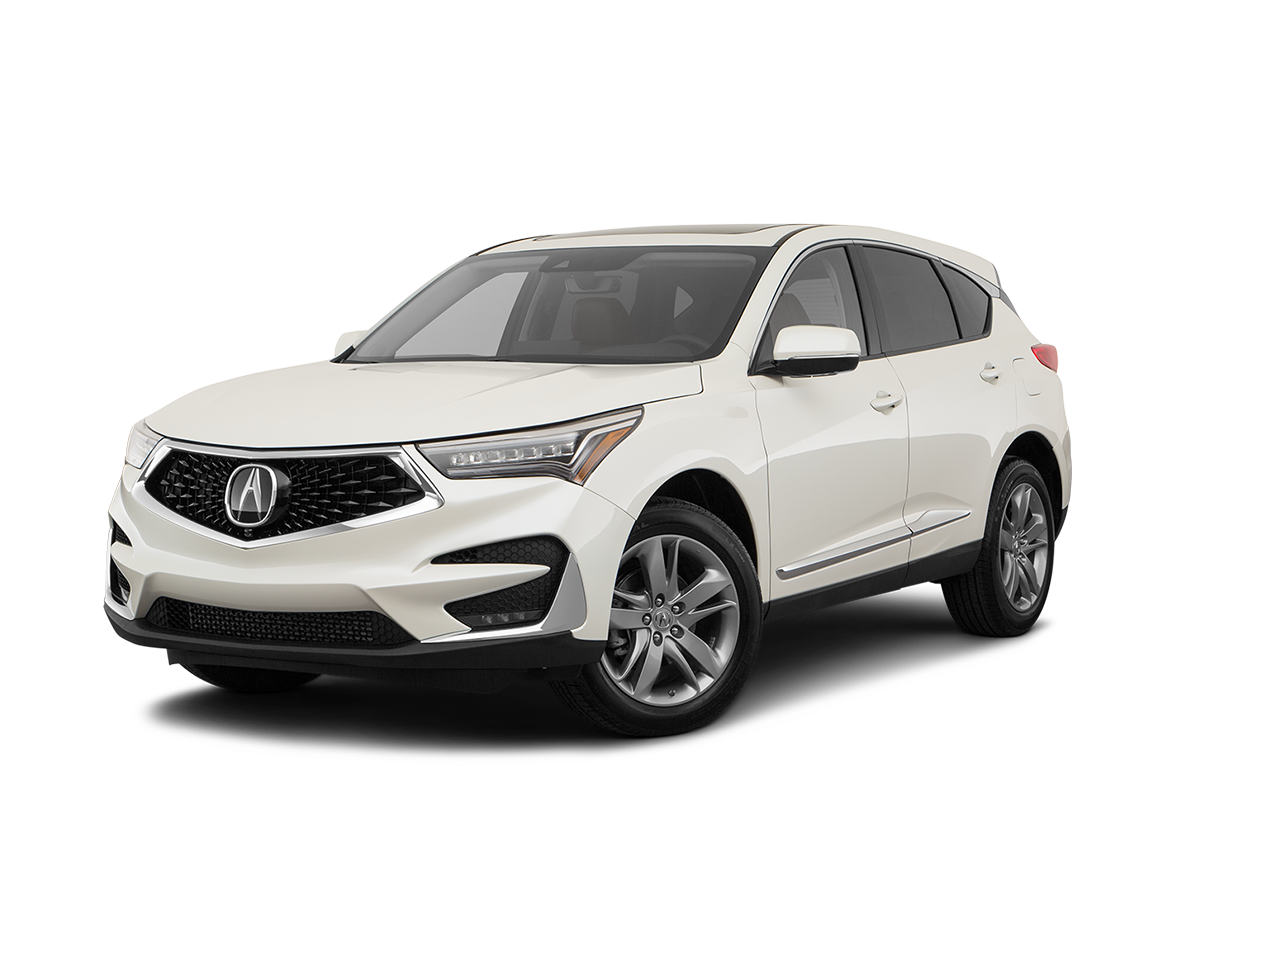 2019 RDX Advance Package